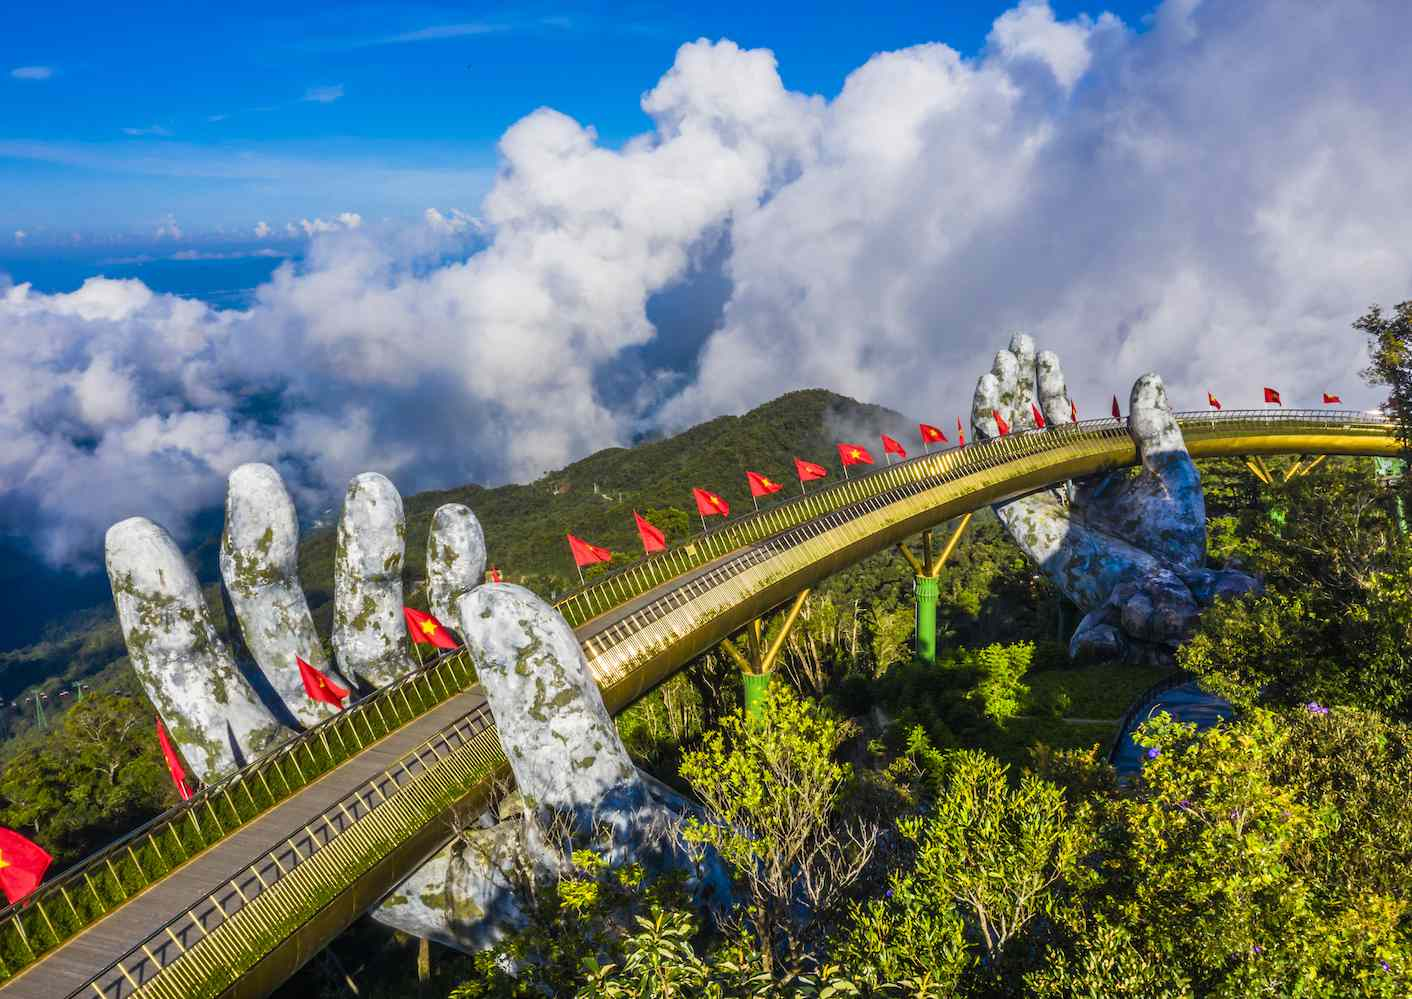 The gold-painted Cau Vang bridge in Vietnam appears to be held by two giant hands of stone